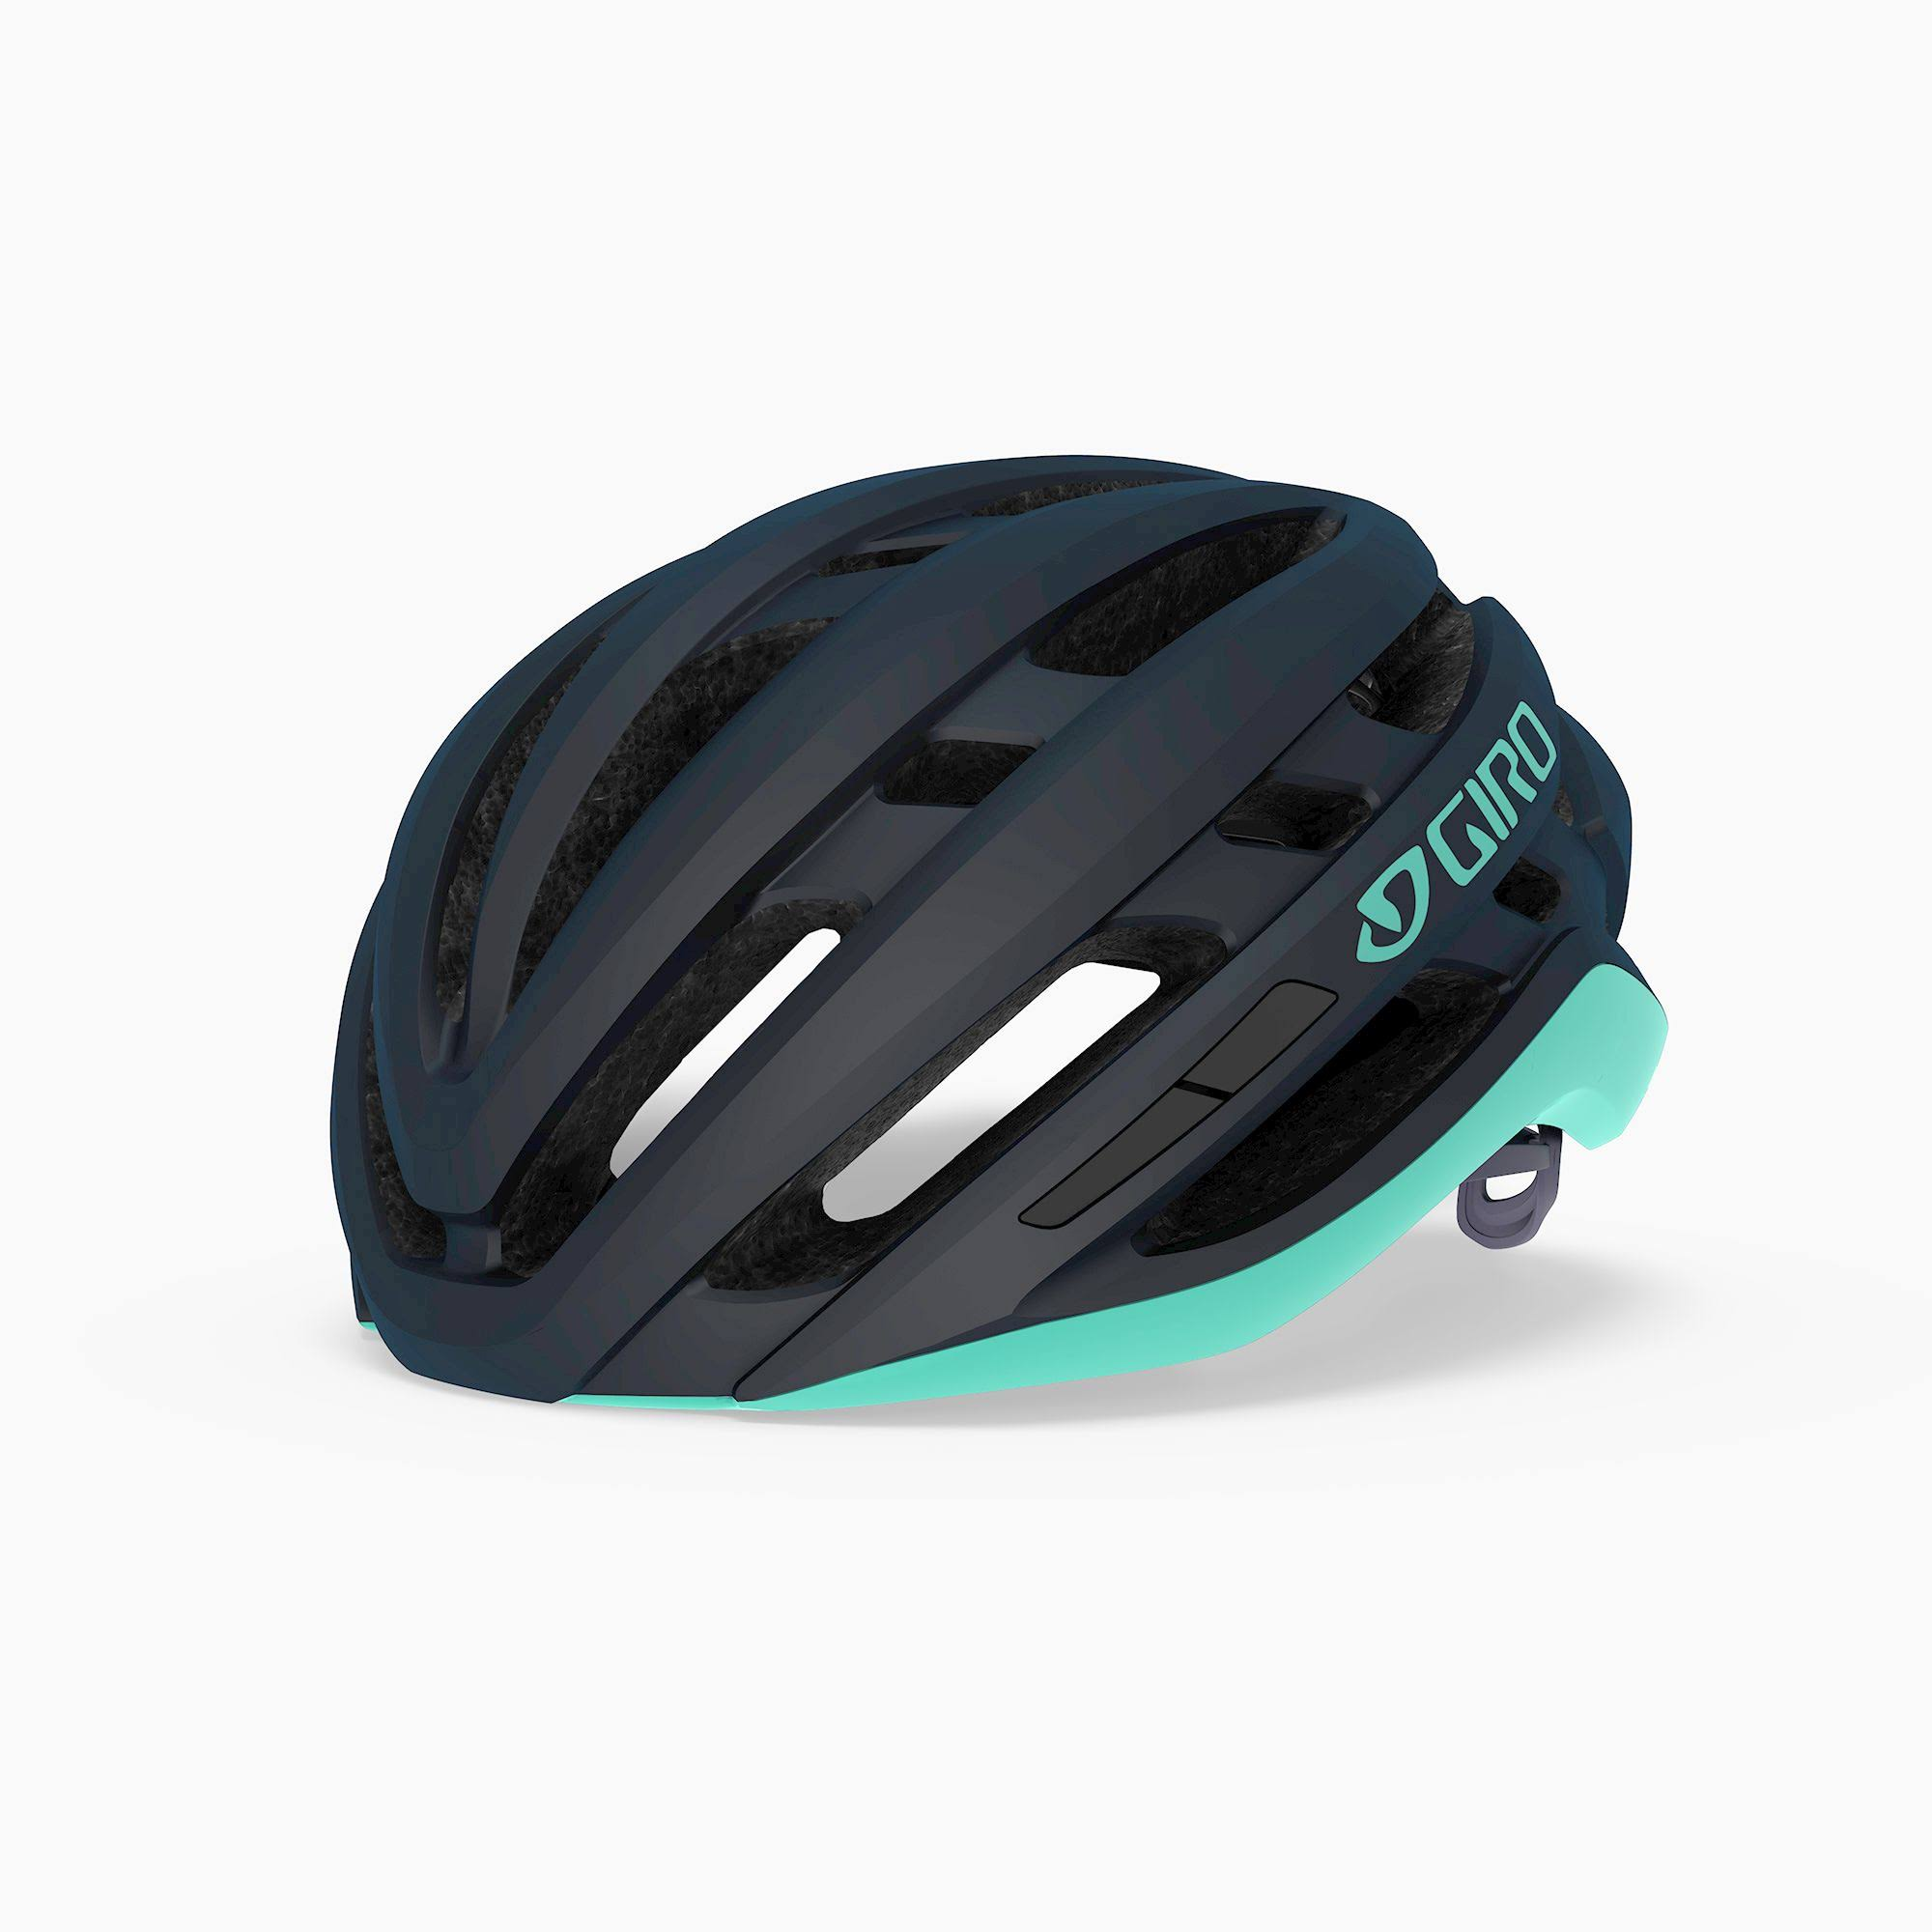 Giro Women's Agilis Mips Helmet - Matte Midnight, Small